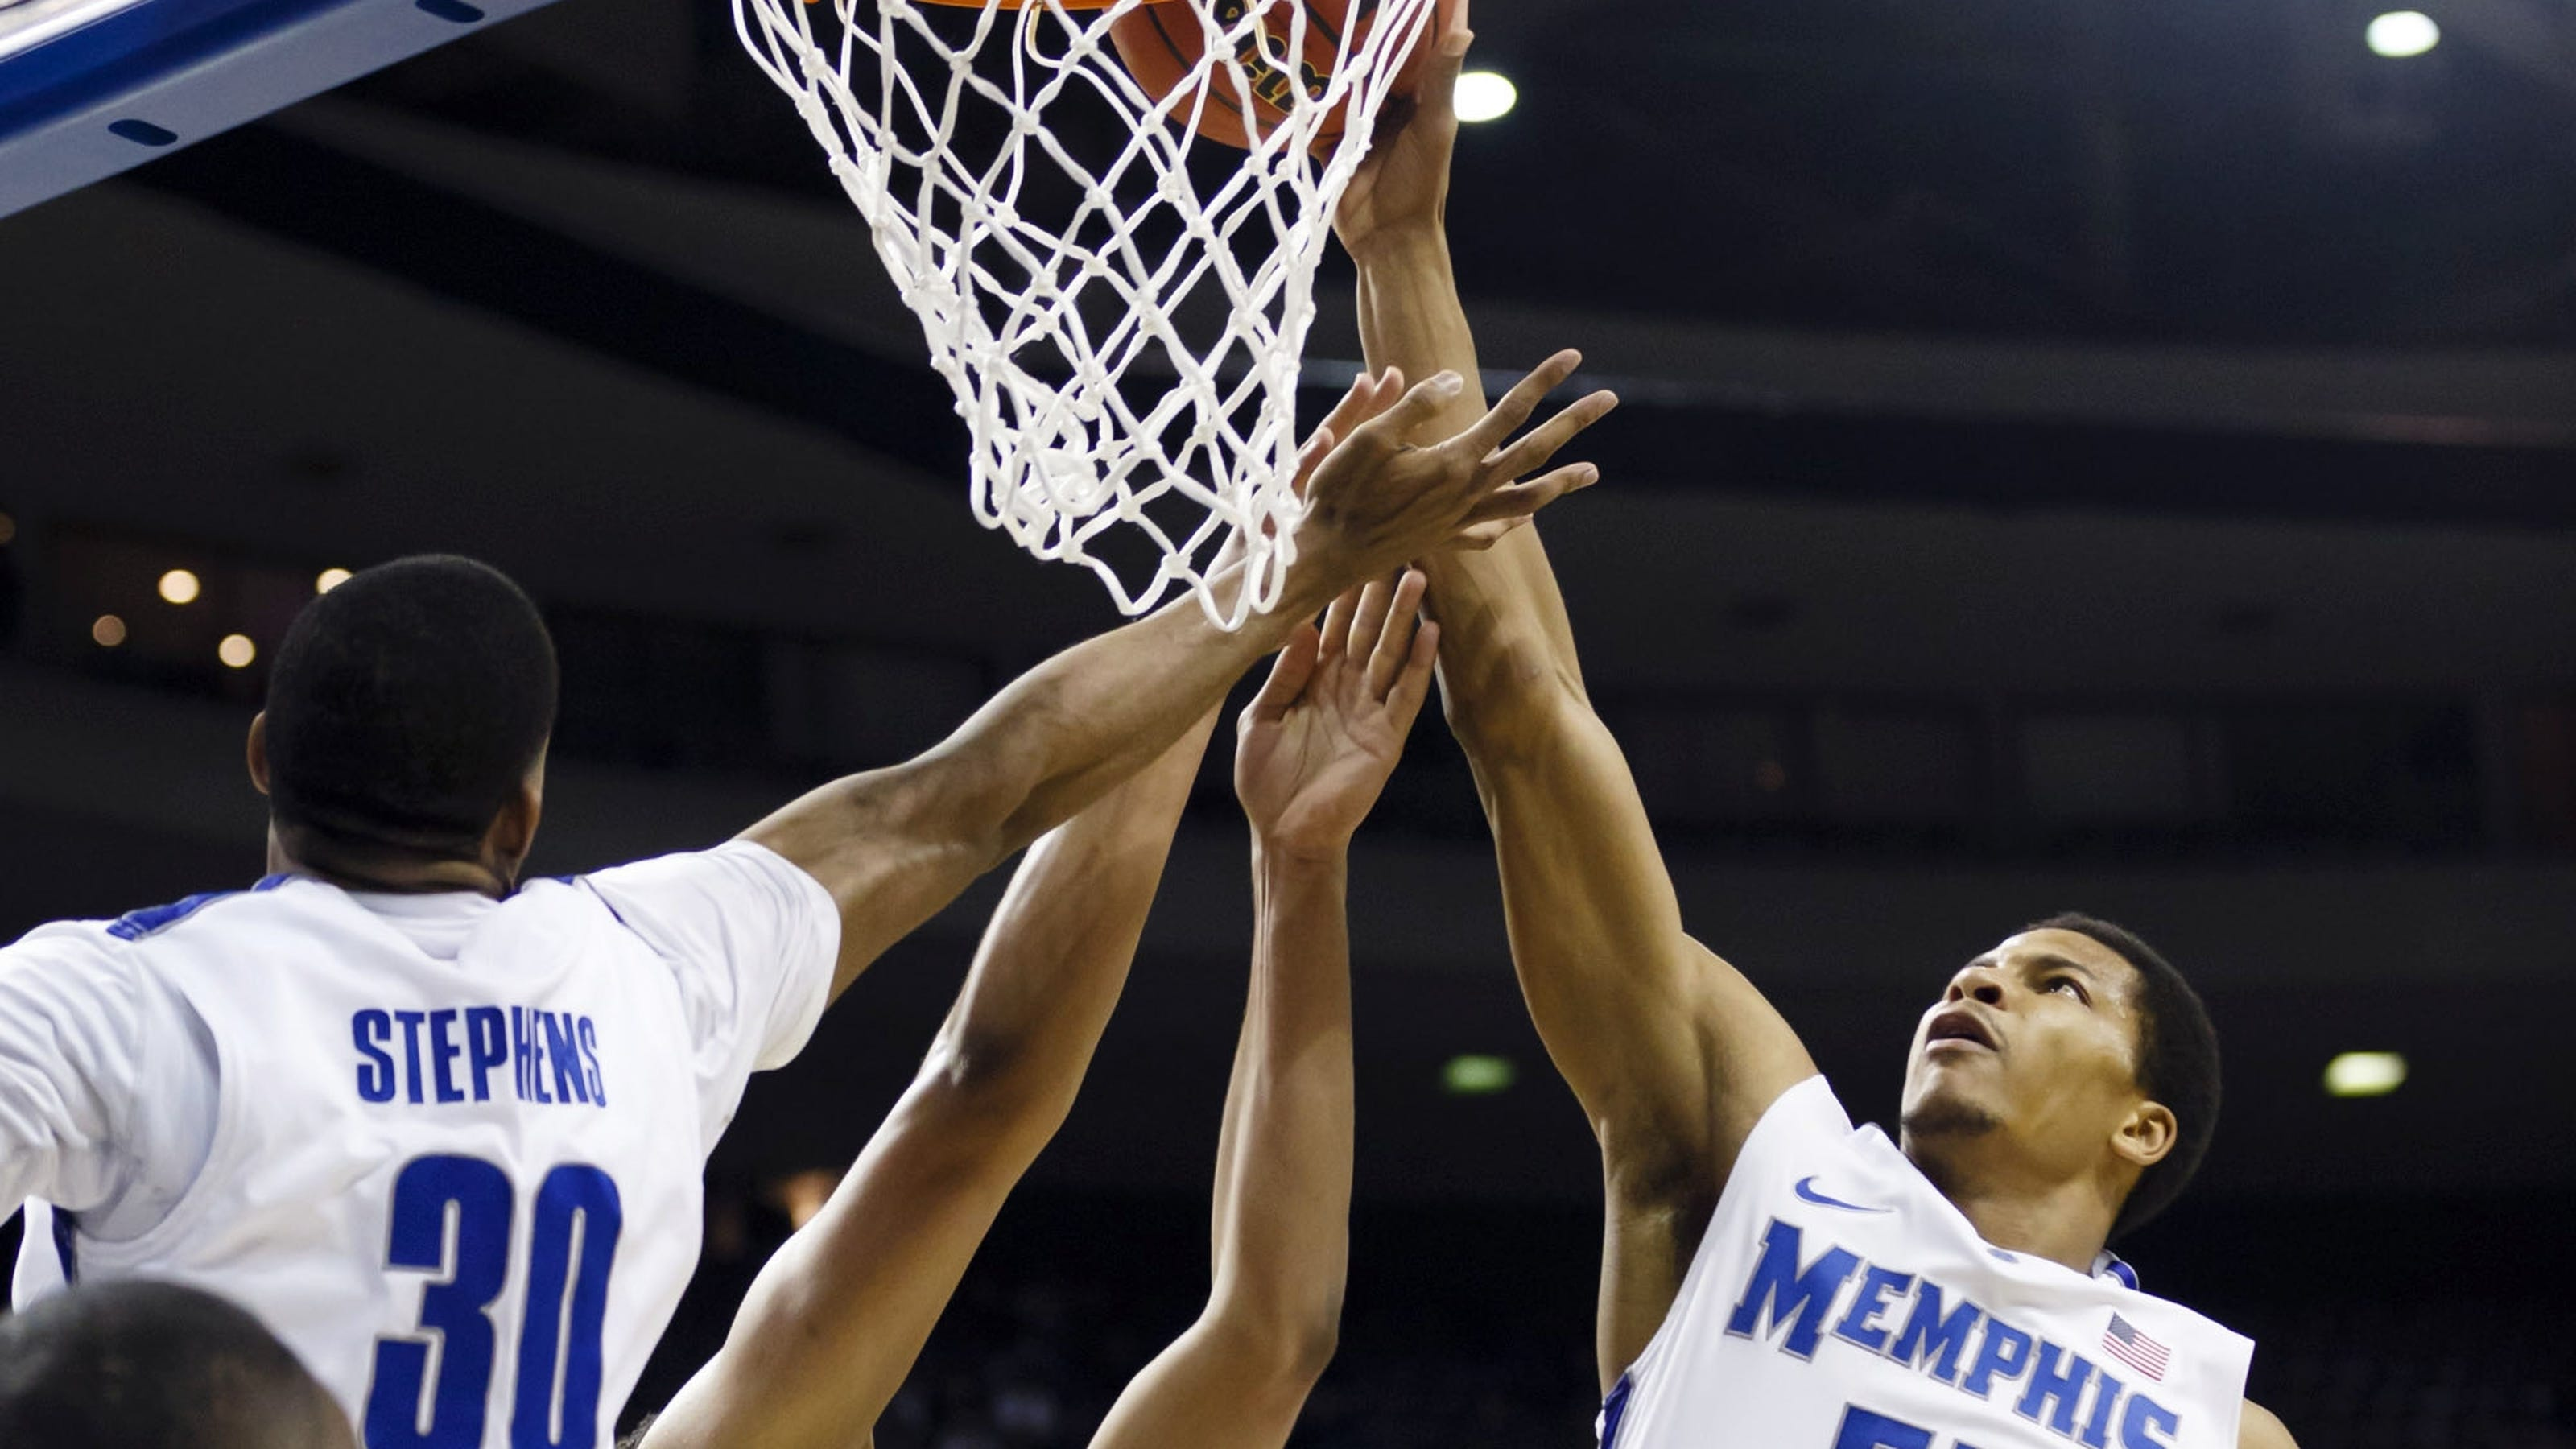 Memphis survives Saint Mary's to advance to the third round